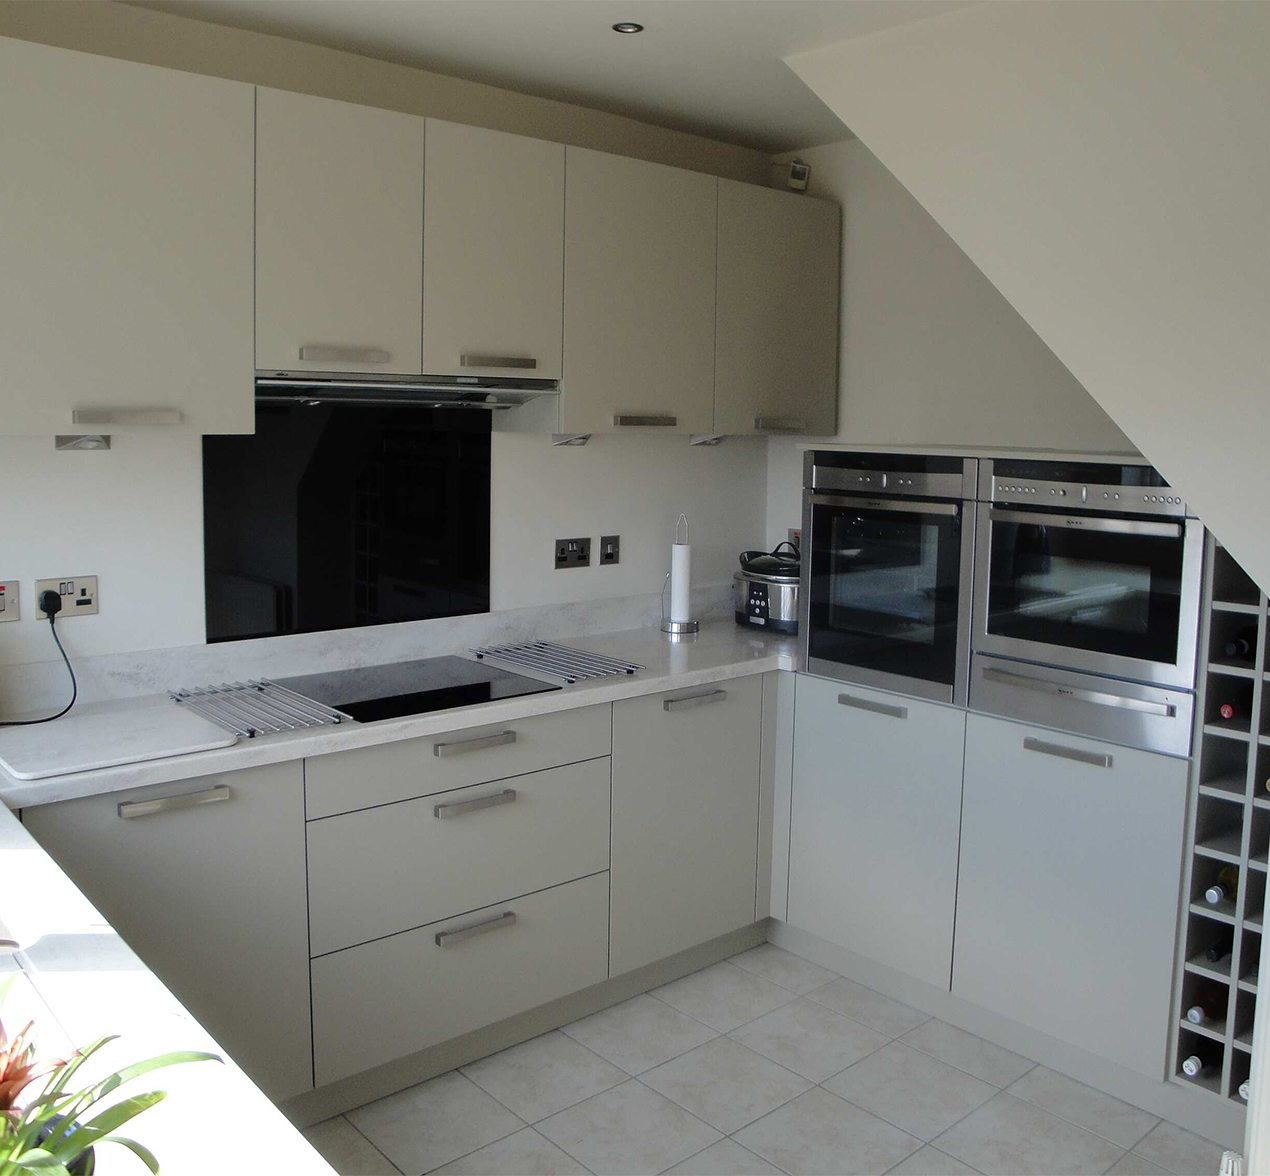 Creative Kitchen Re-design In Oldham